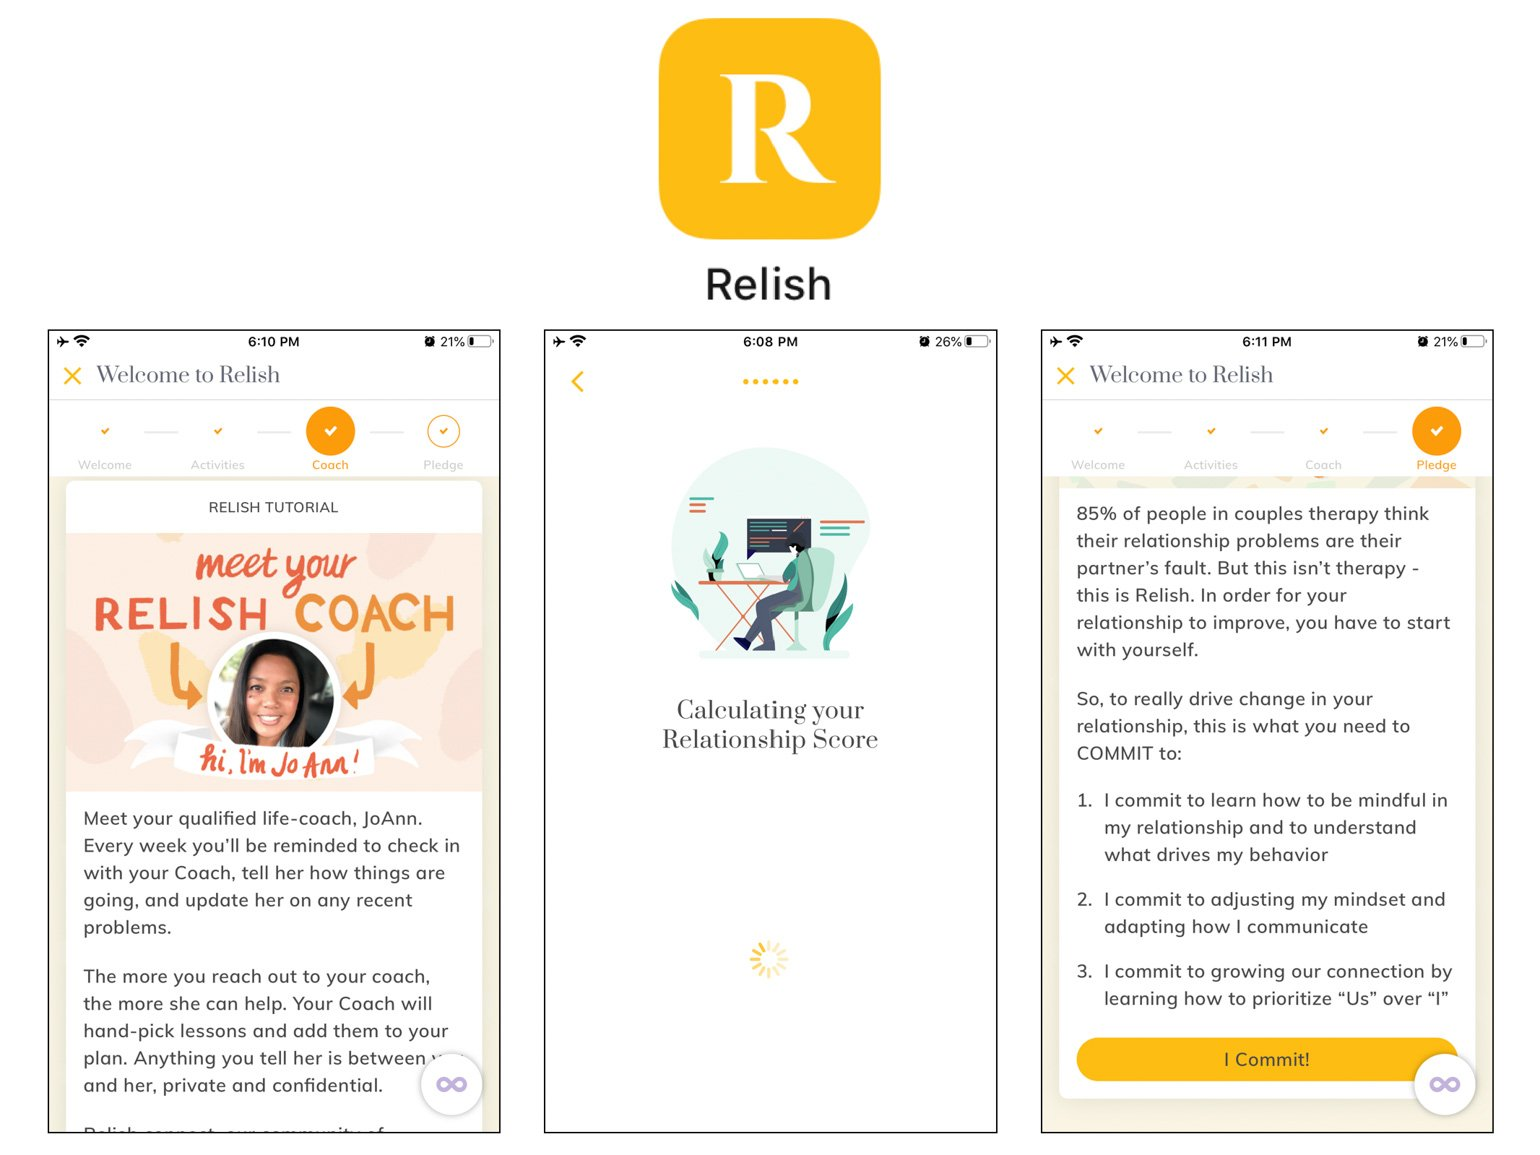 Relish Best Apps for Married Couples Ryan and Alex Duo Life